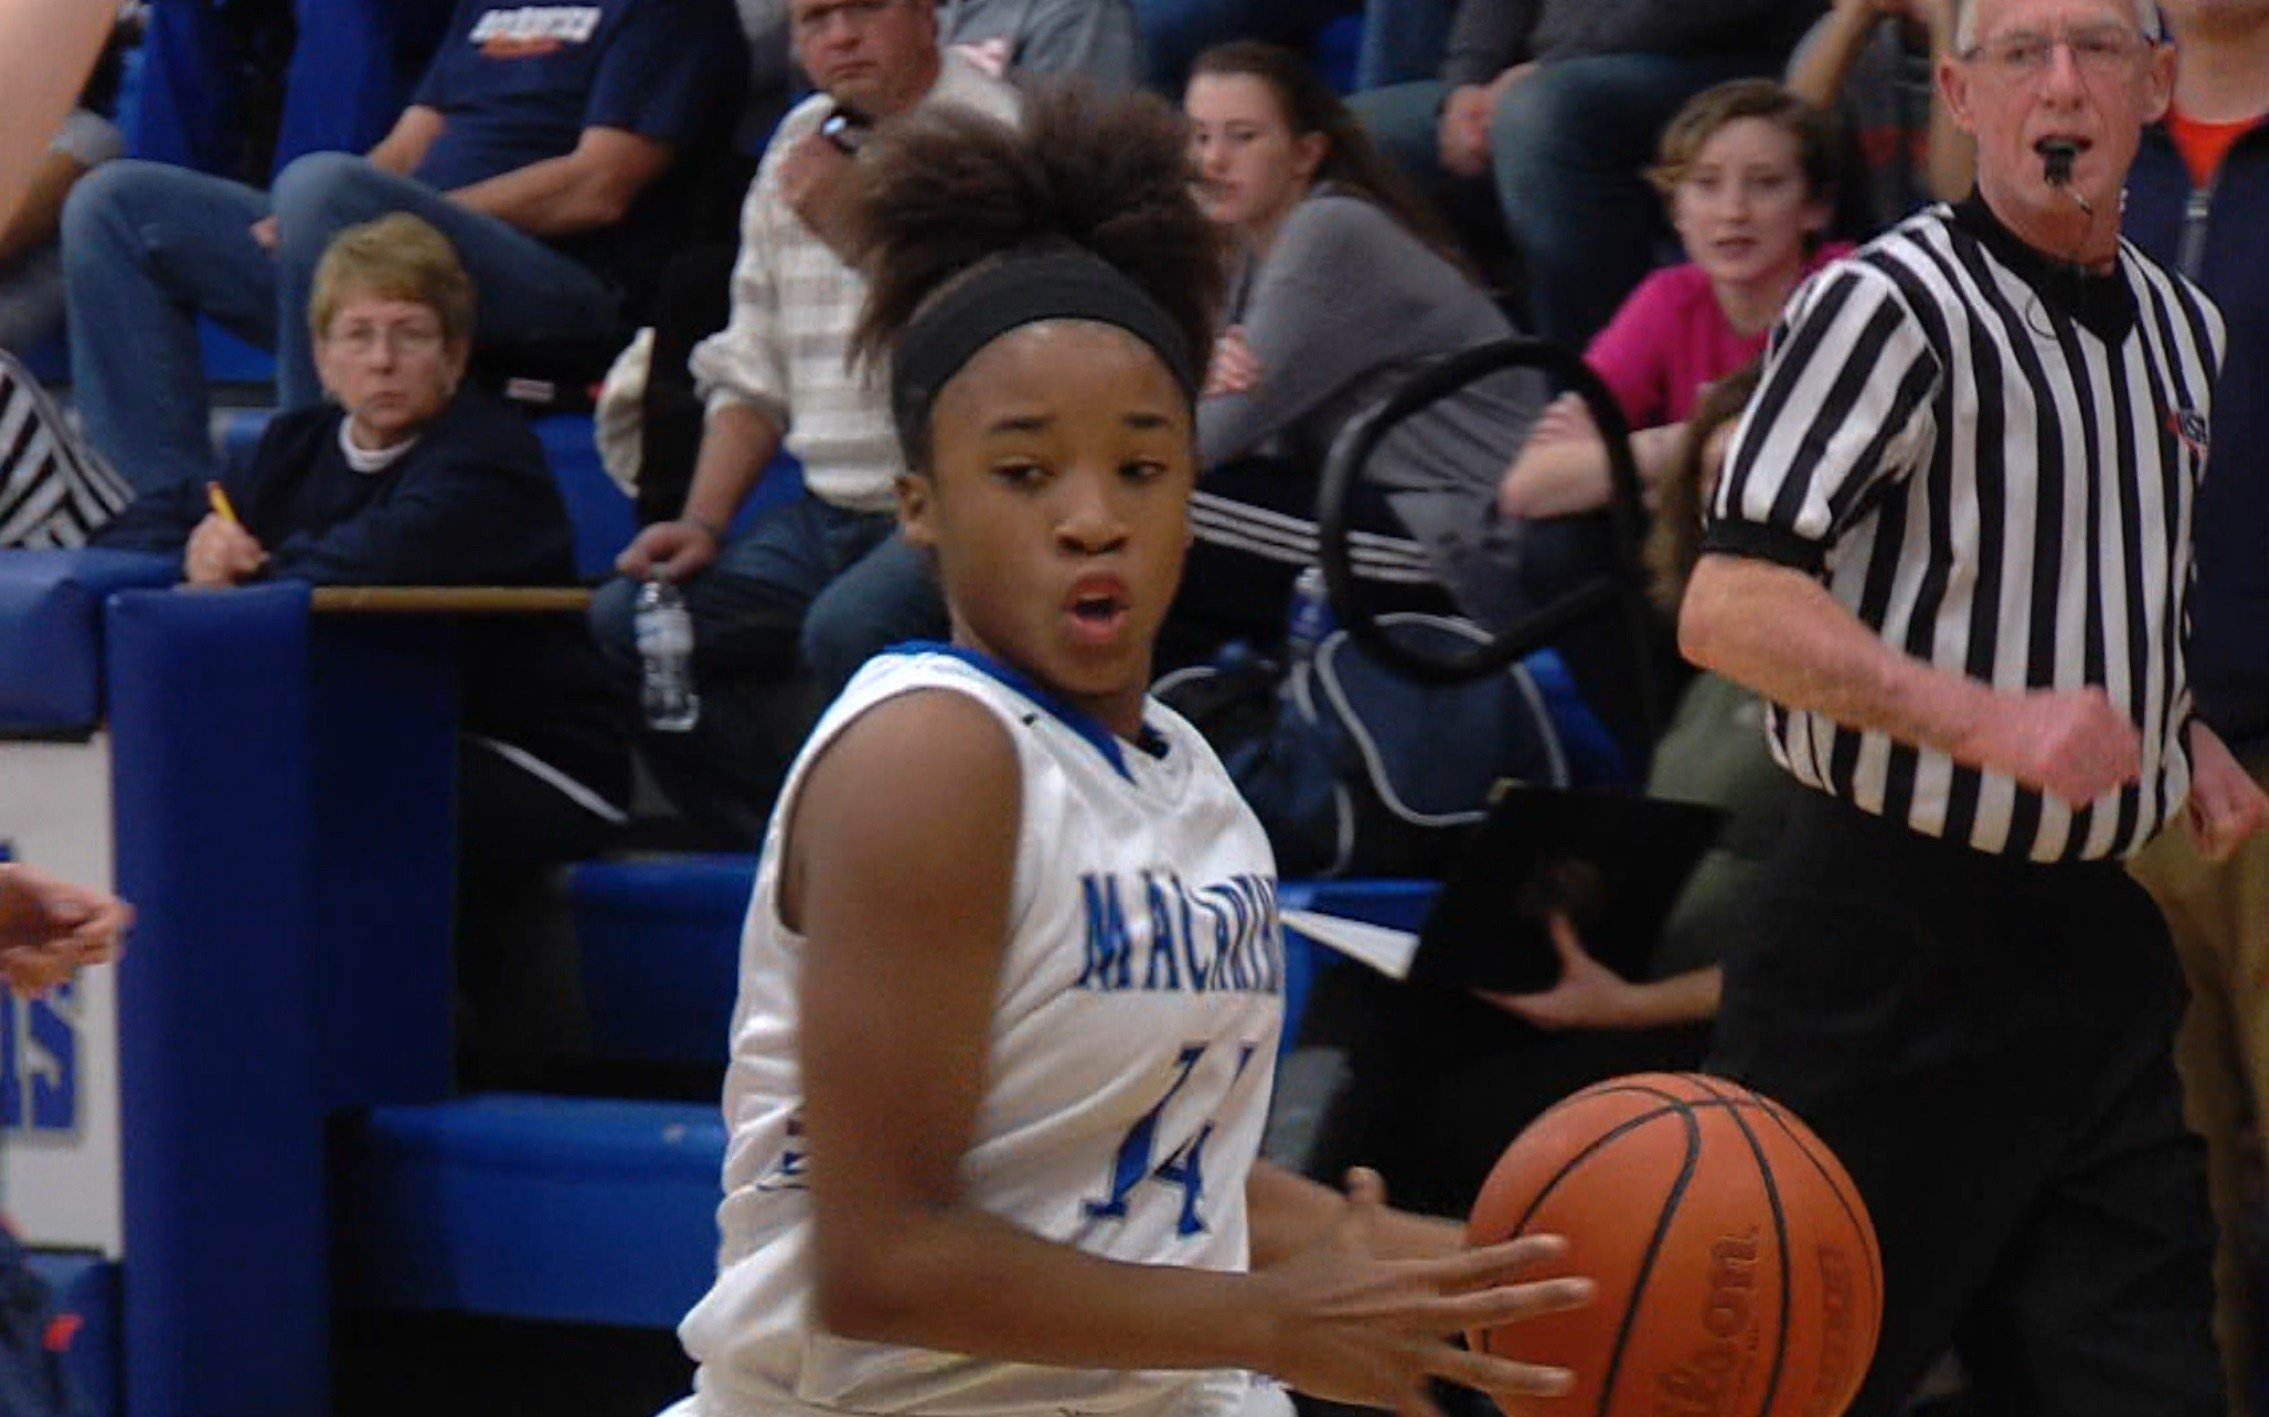 Freshman guard Taya Davis leads MacArthur with 3.8 assists per game to go with 8.5 points per game.